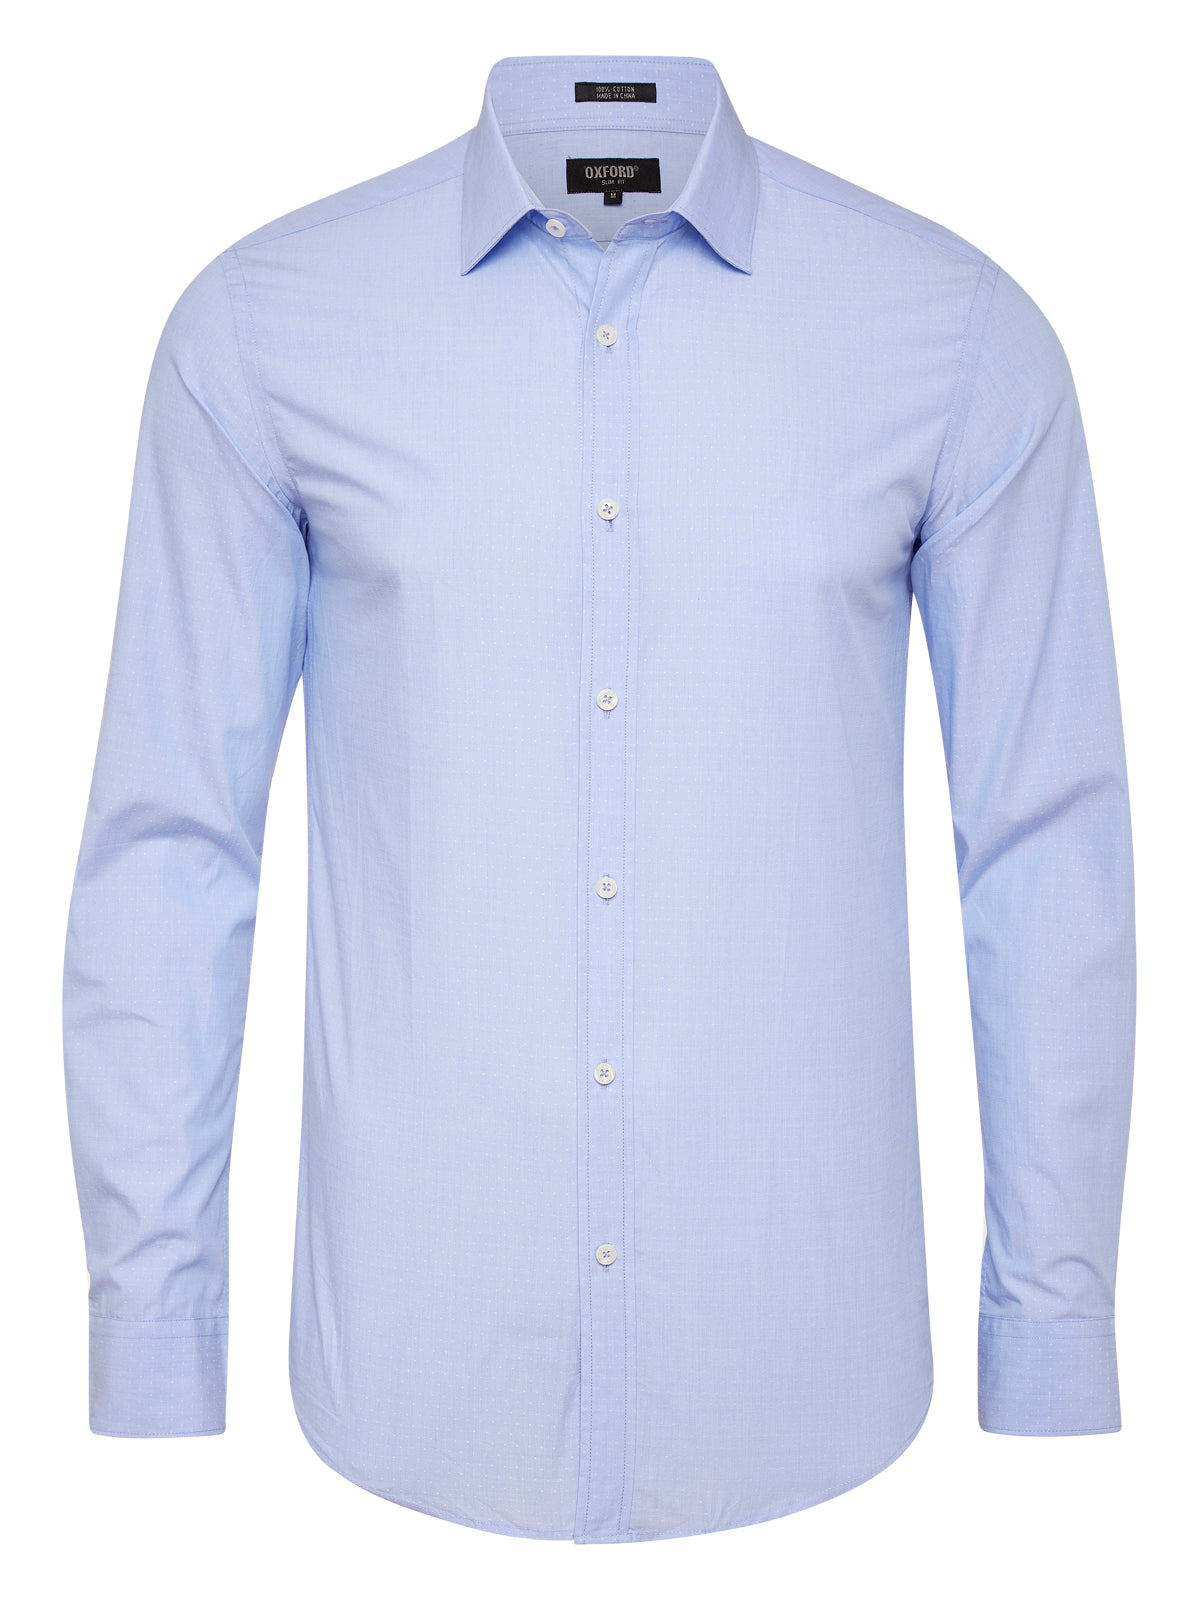 BECKTON STARRY SHIRT BLUE